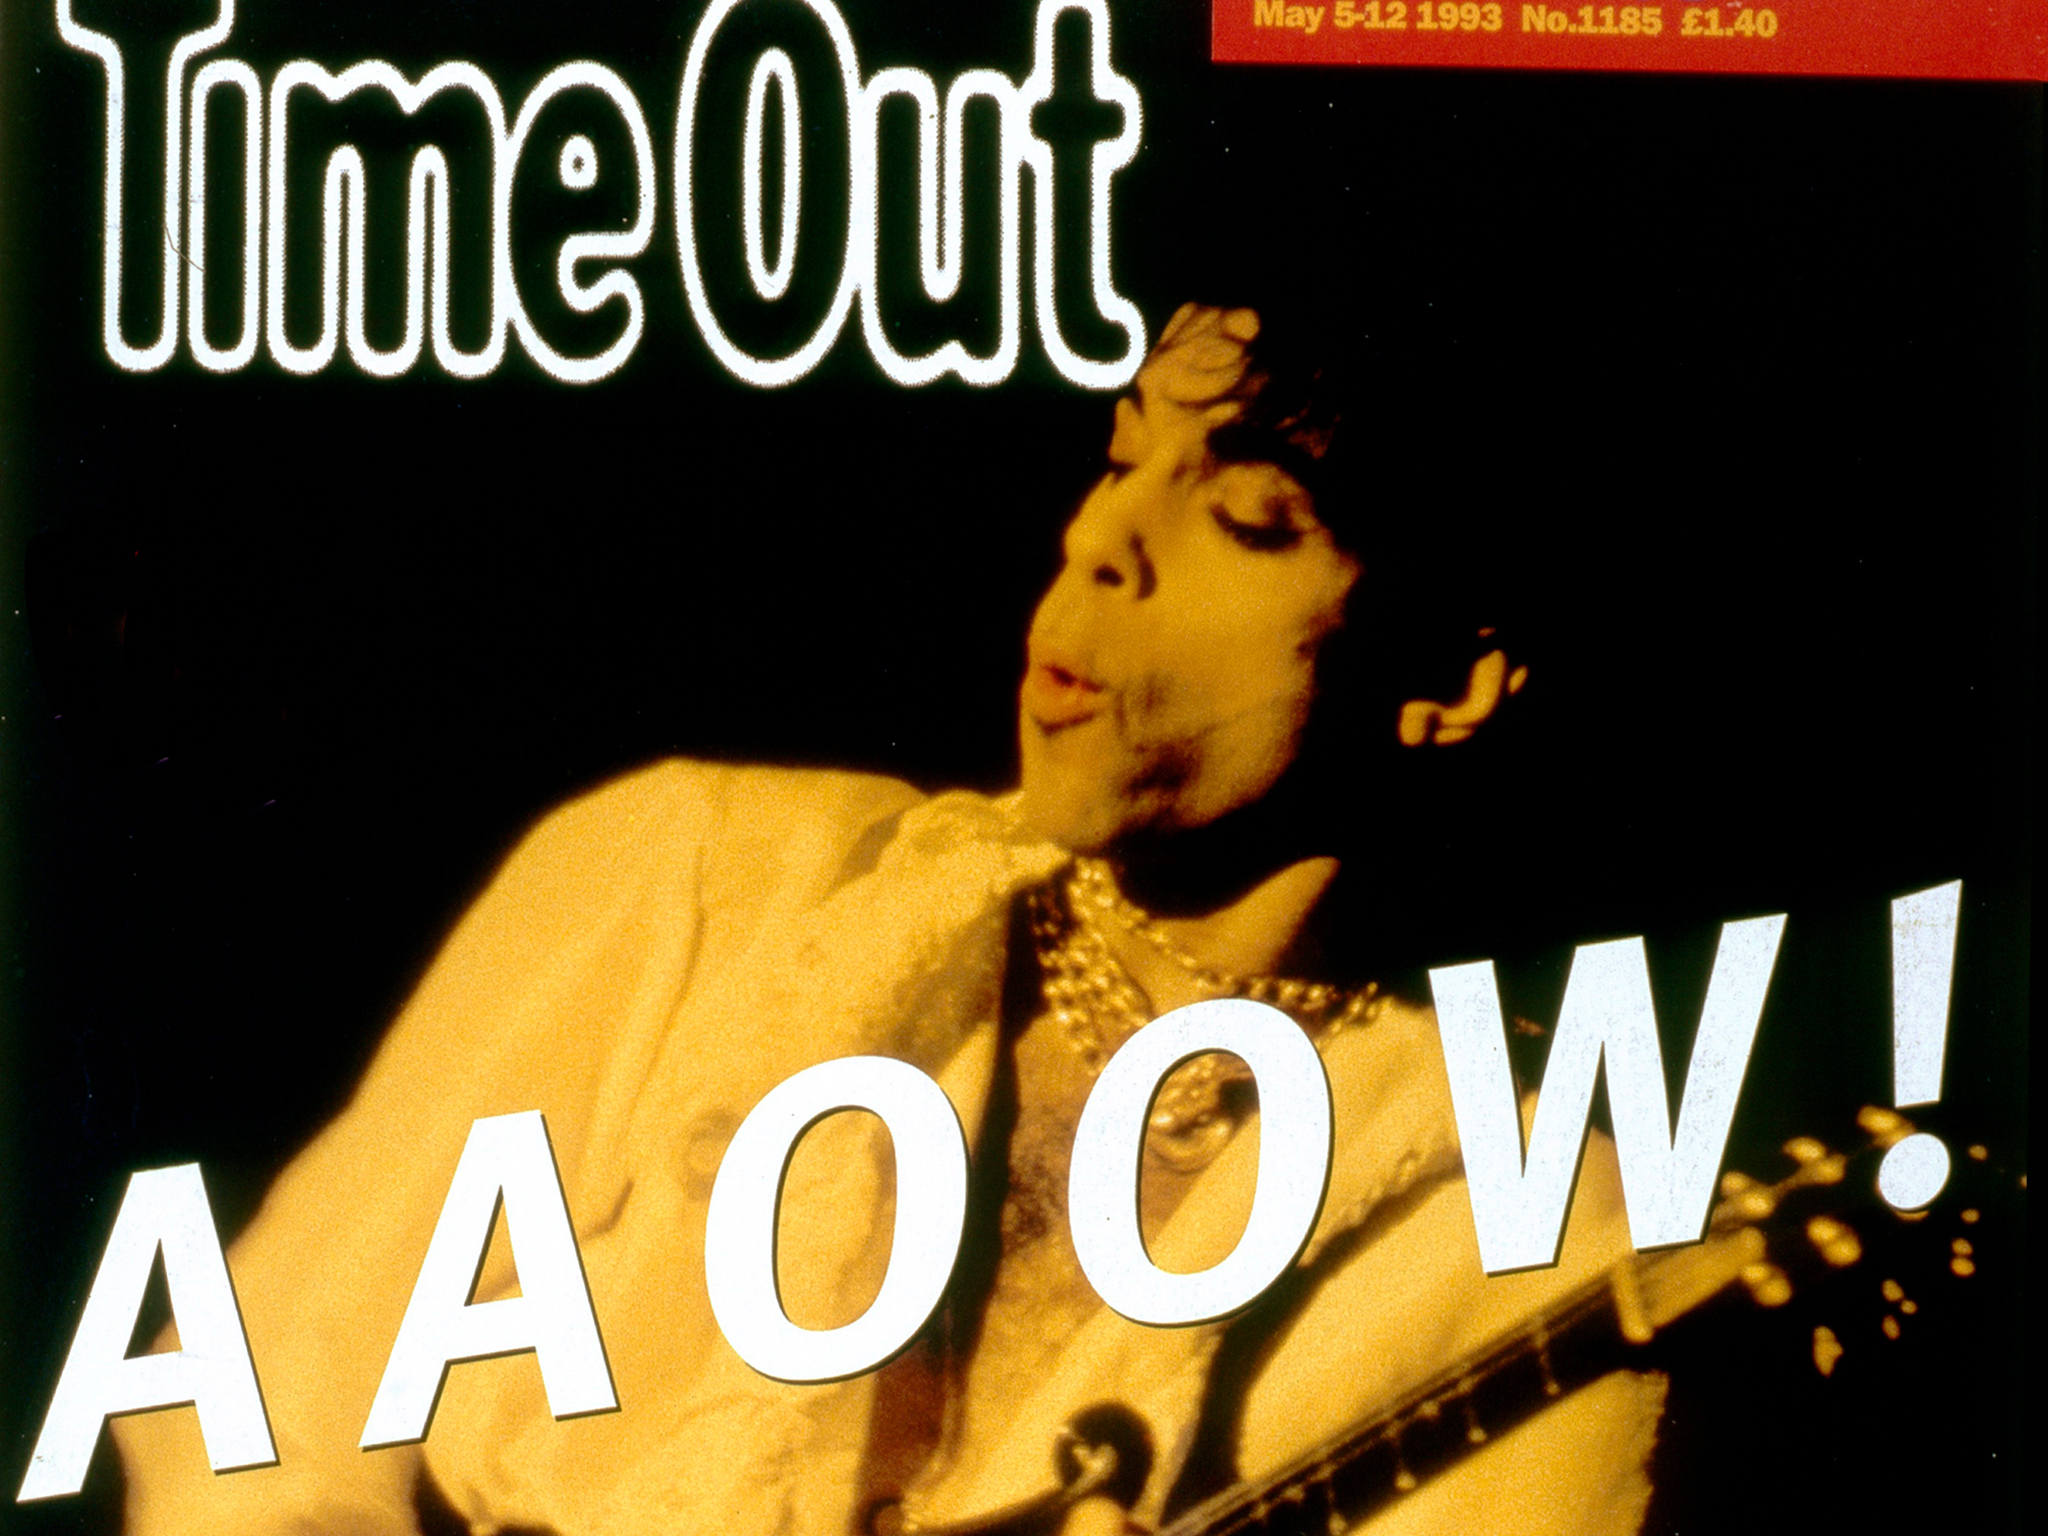 Prince: legend, icon, Time Out cover star